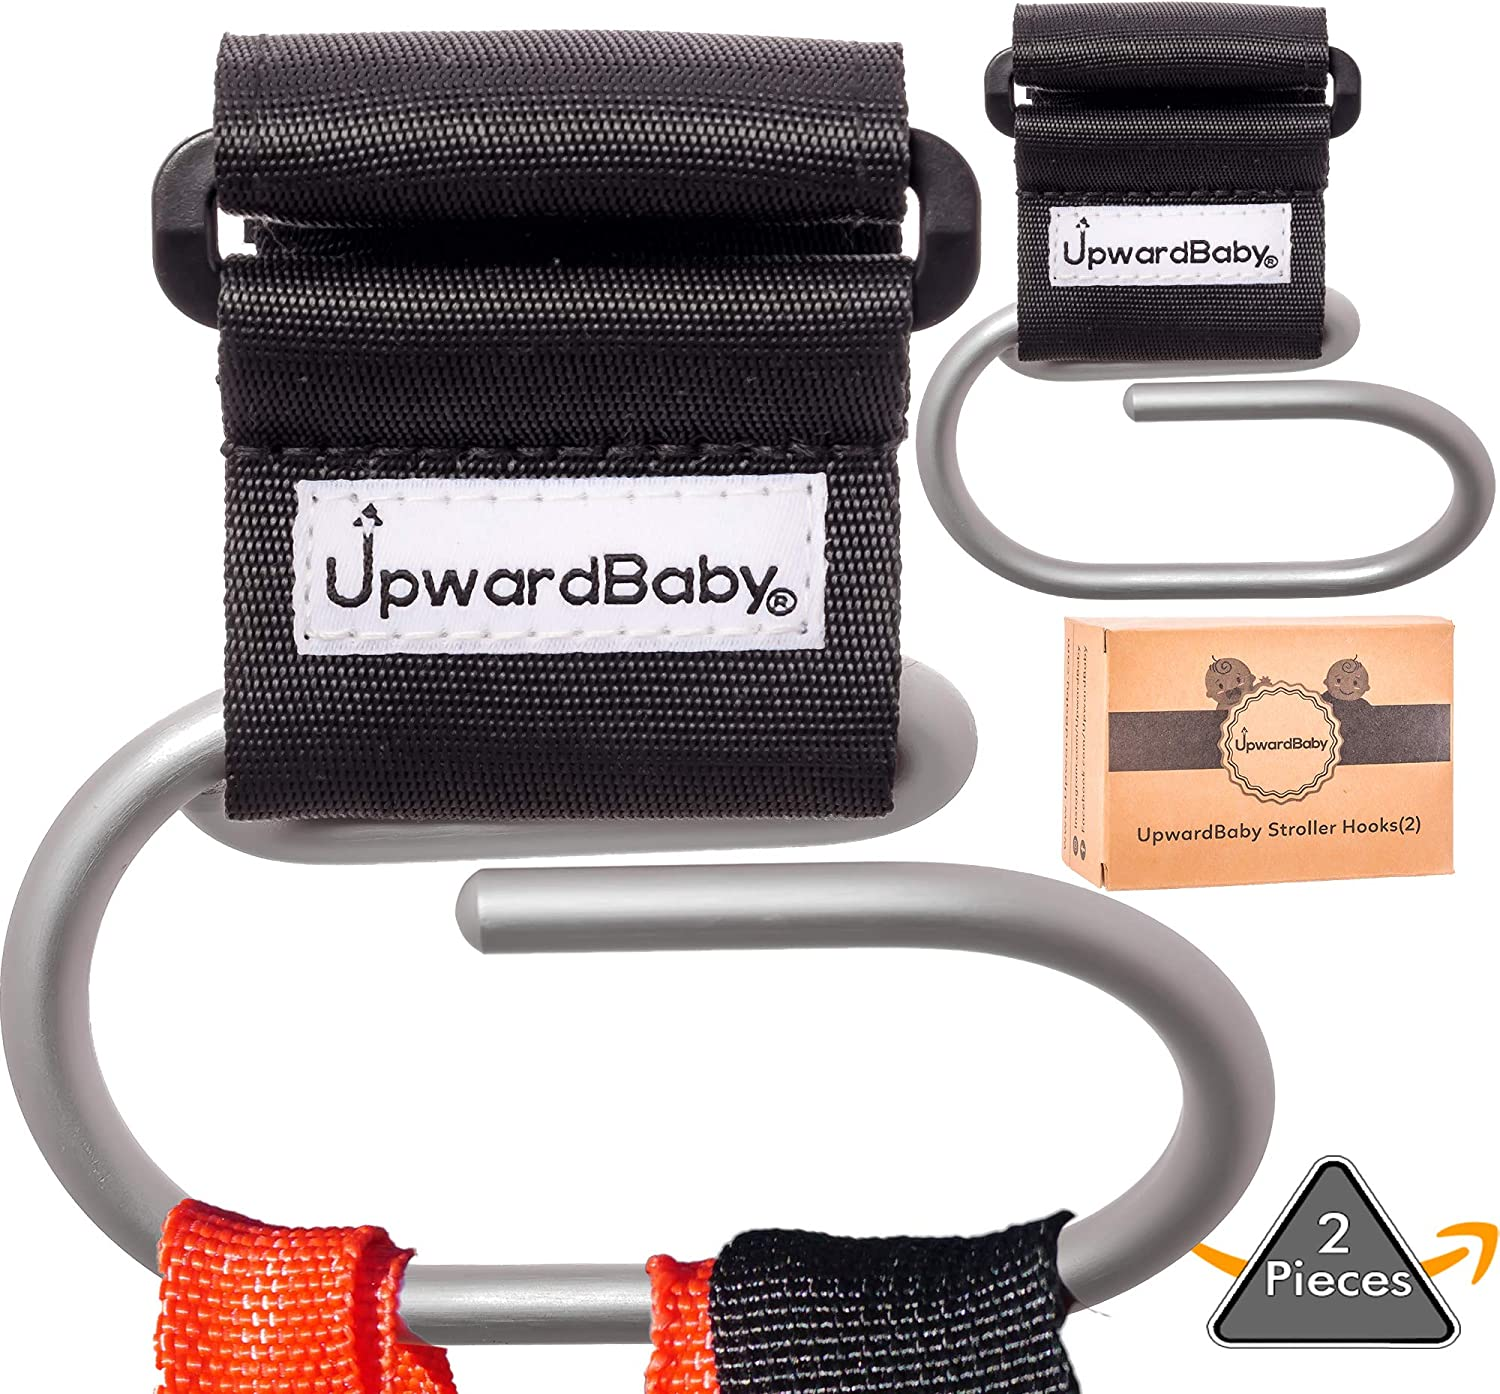 Stroller Hooks - Extra Security Holds 40lbs - UpwardBaby 2 Pack Baby Universal Heavy Duty Clip for Purses Grocery Shopping Diaper Bags Backpacks - Perfect Wheelchairs Accessories - Video demonstration